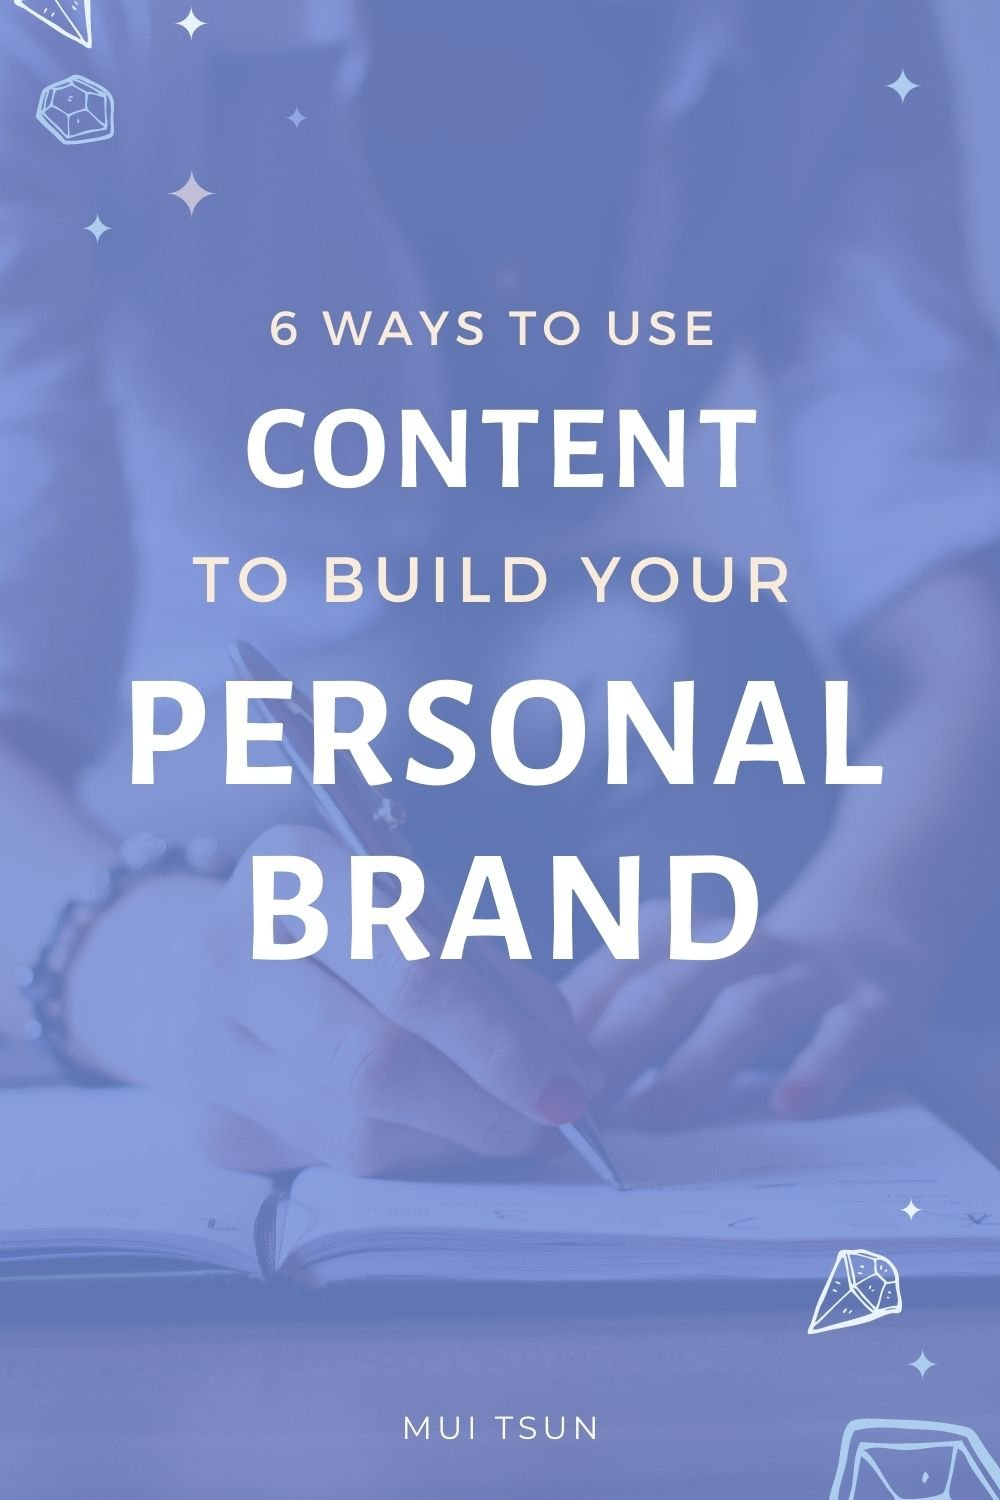 6 Ways To Use Content To Build Your Personal Brand